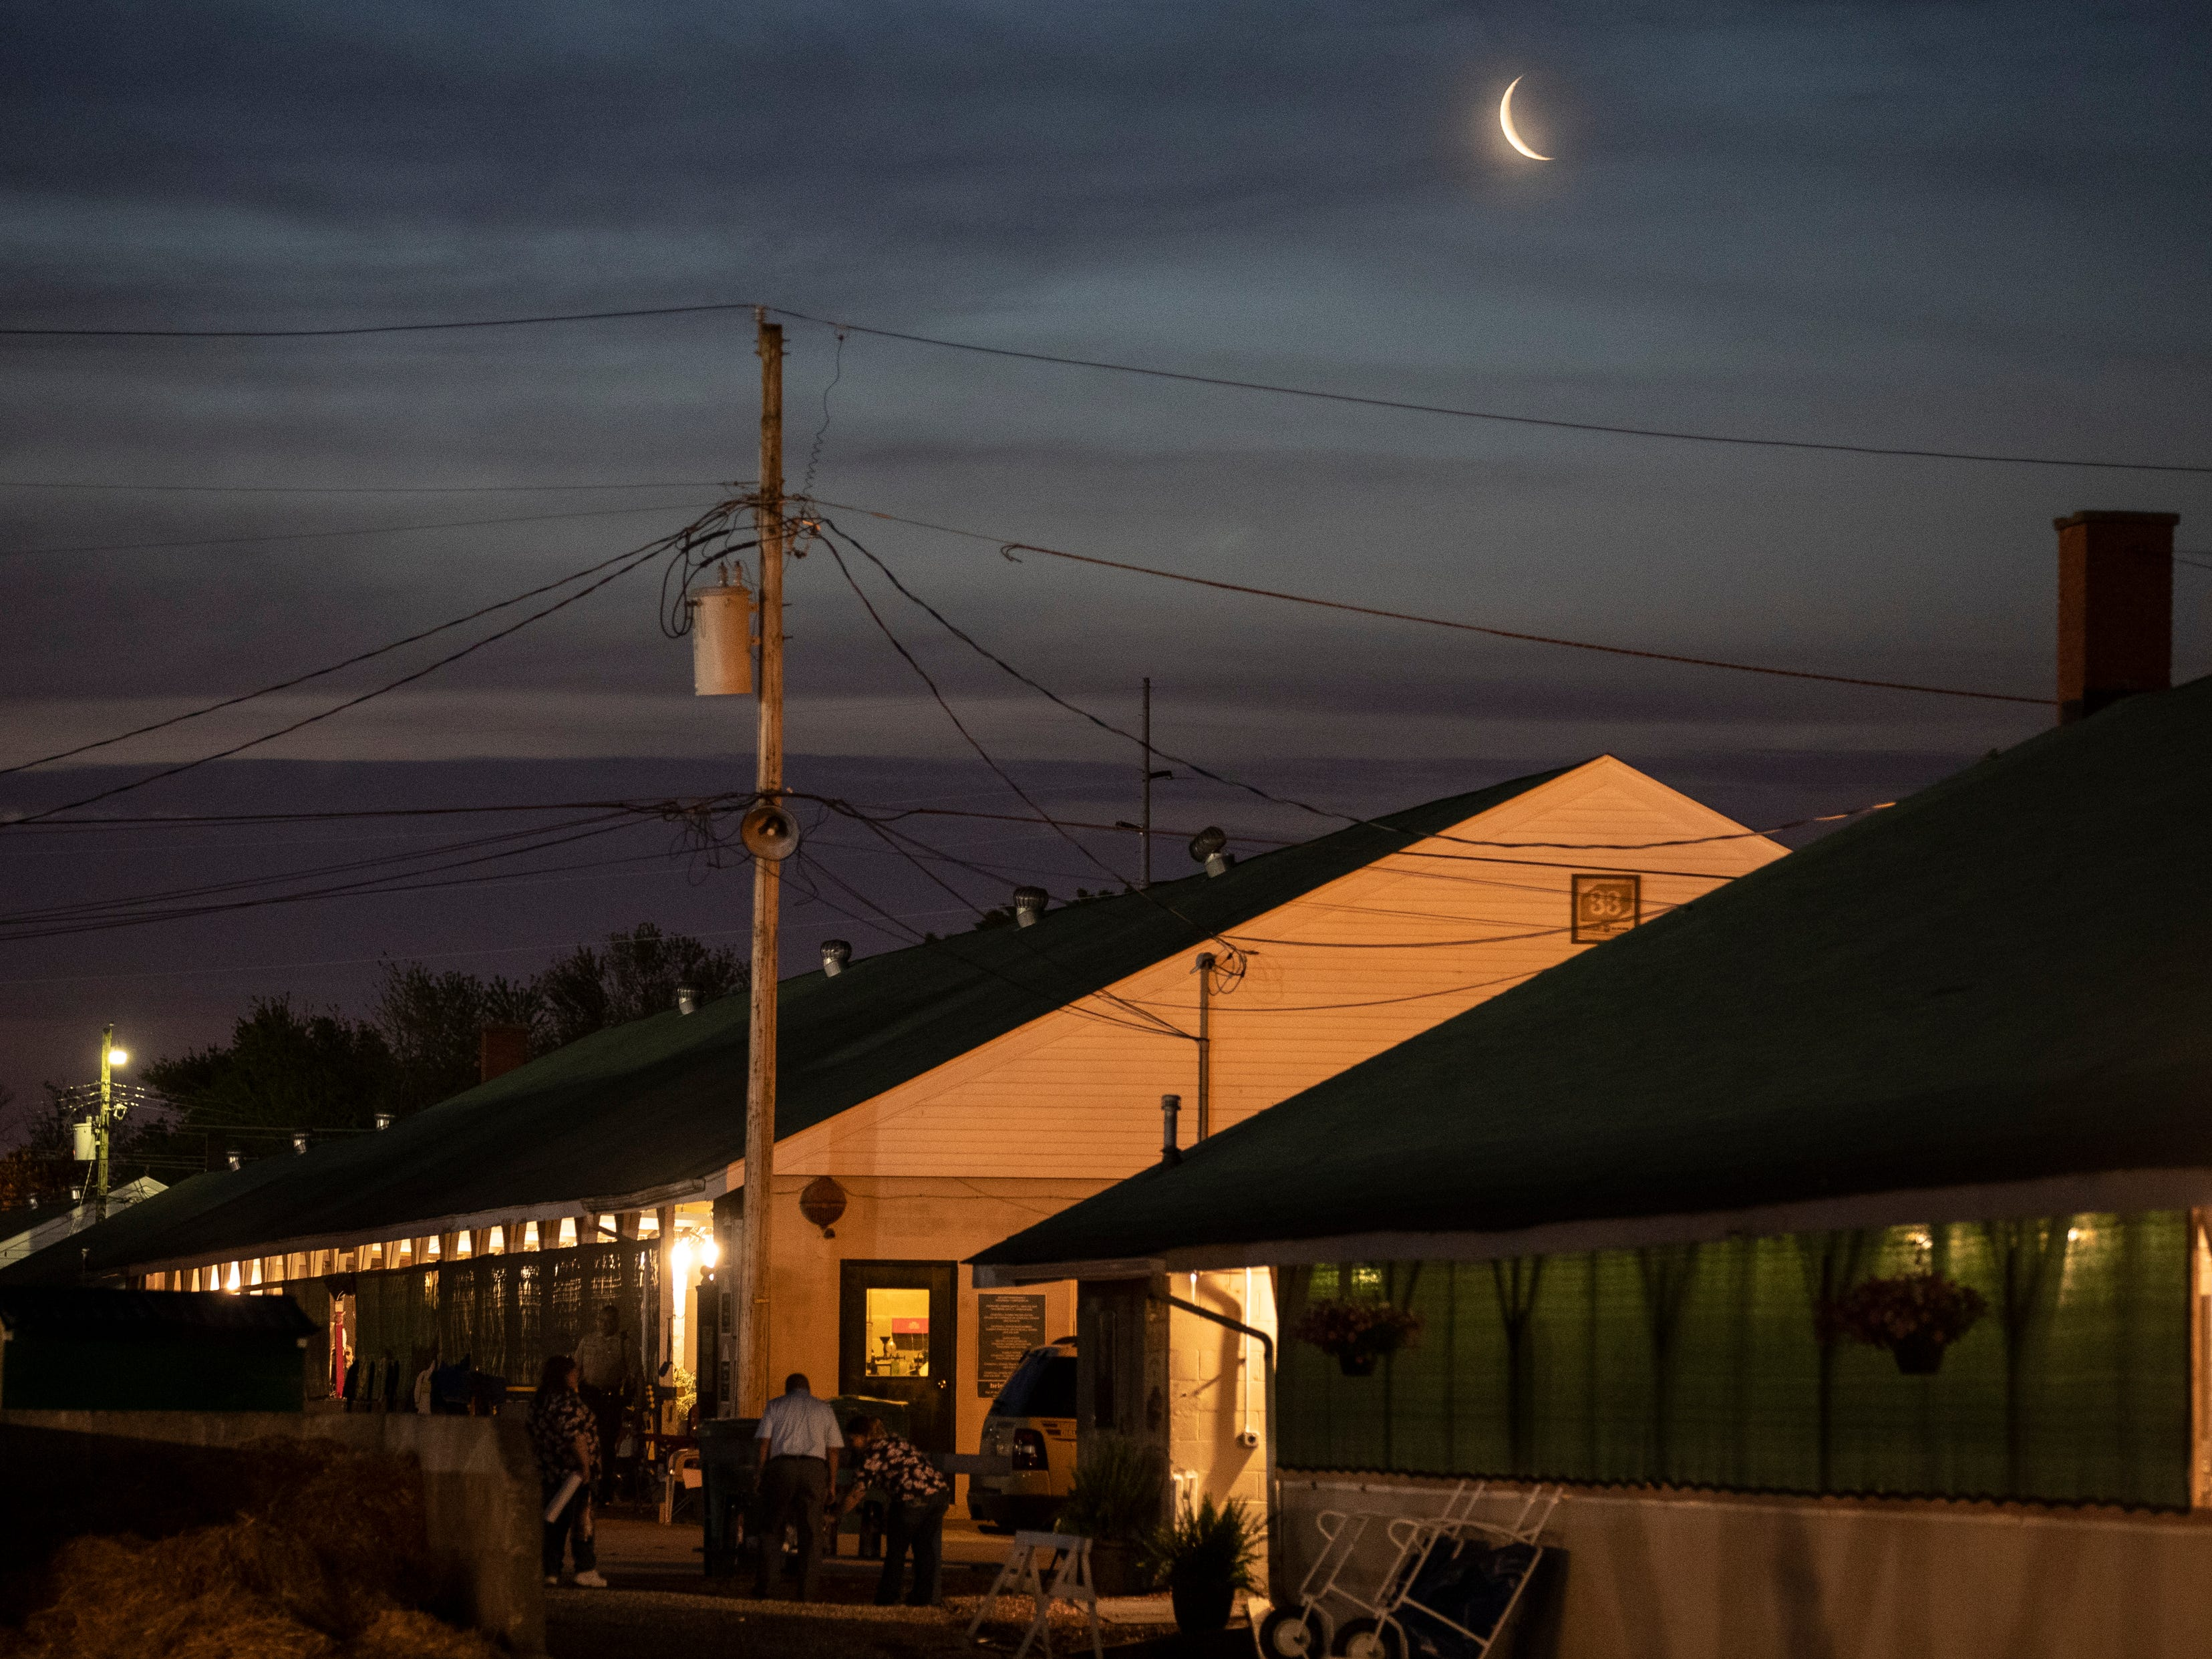 The moon rose over the barns on the backside of Churchill Downs. May 1, 2019